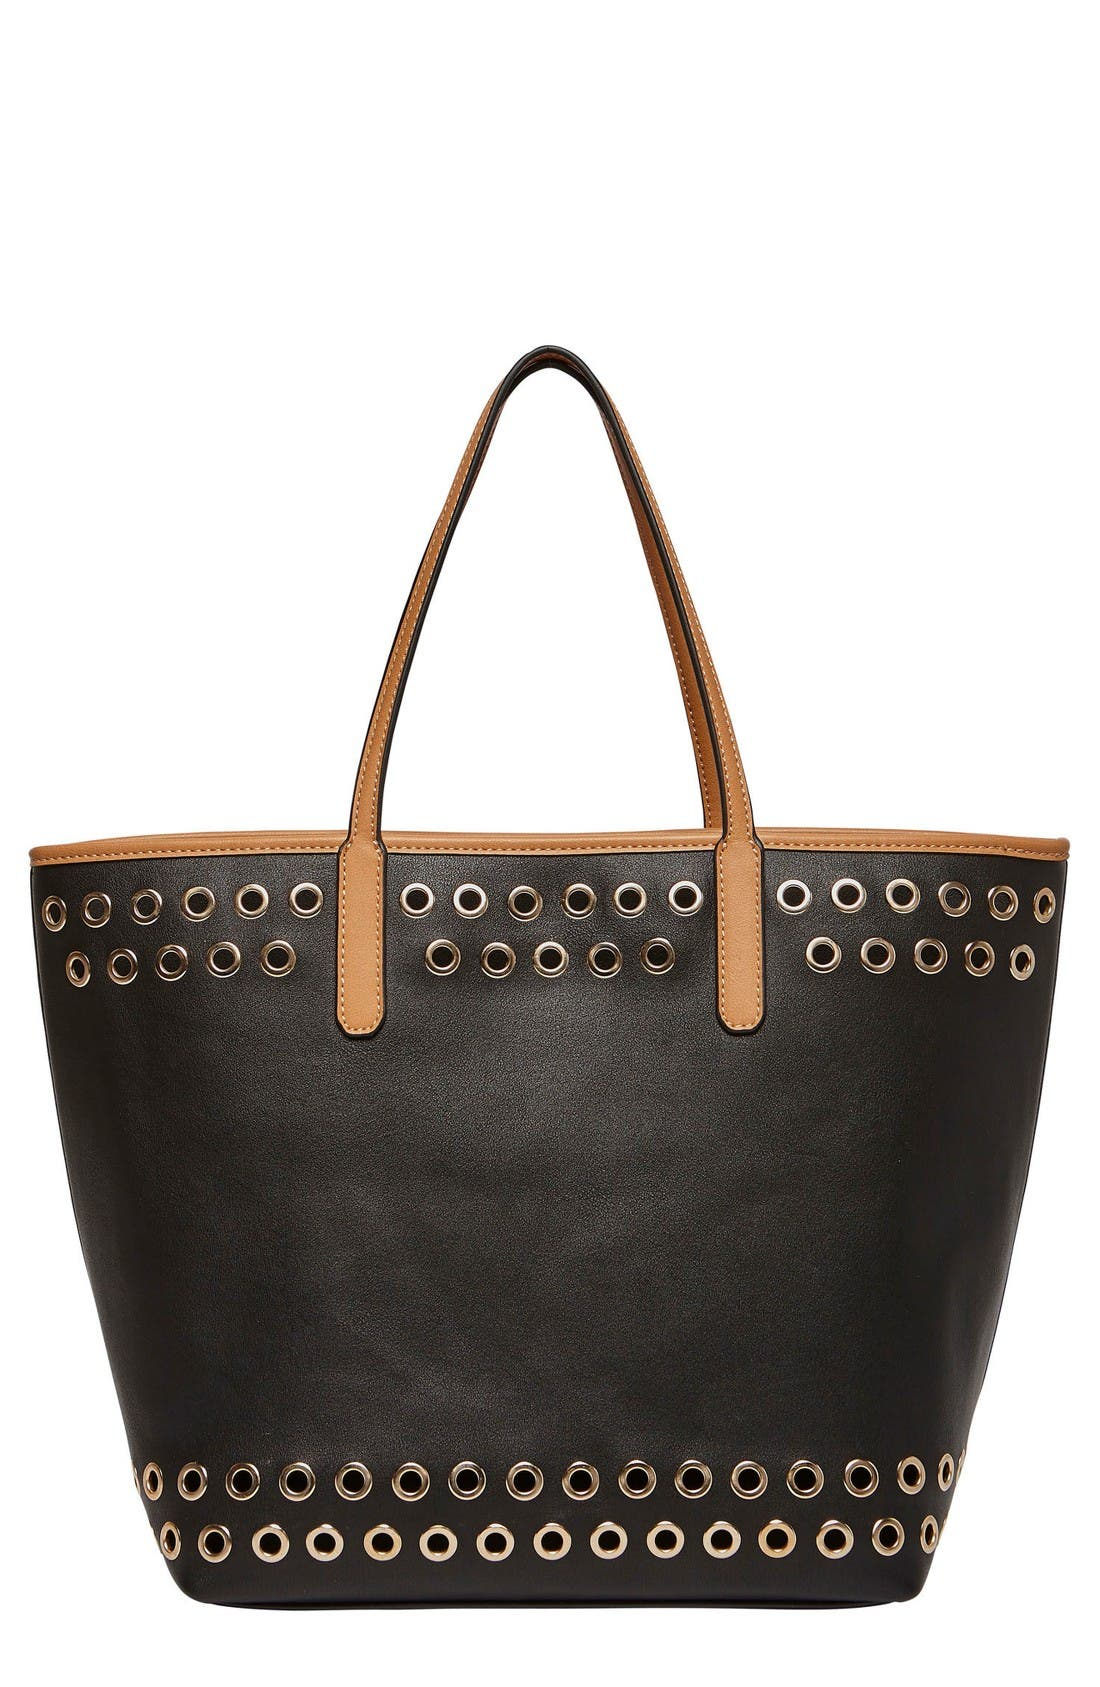 Urban Originals Wonderland Vegan Leather Tote & Shoulder Bag